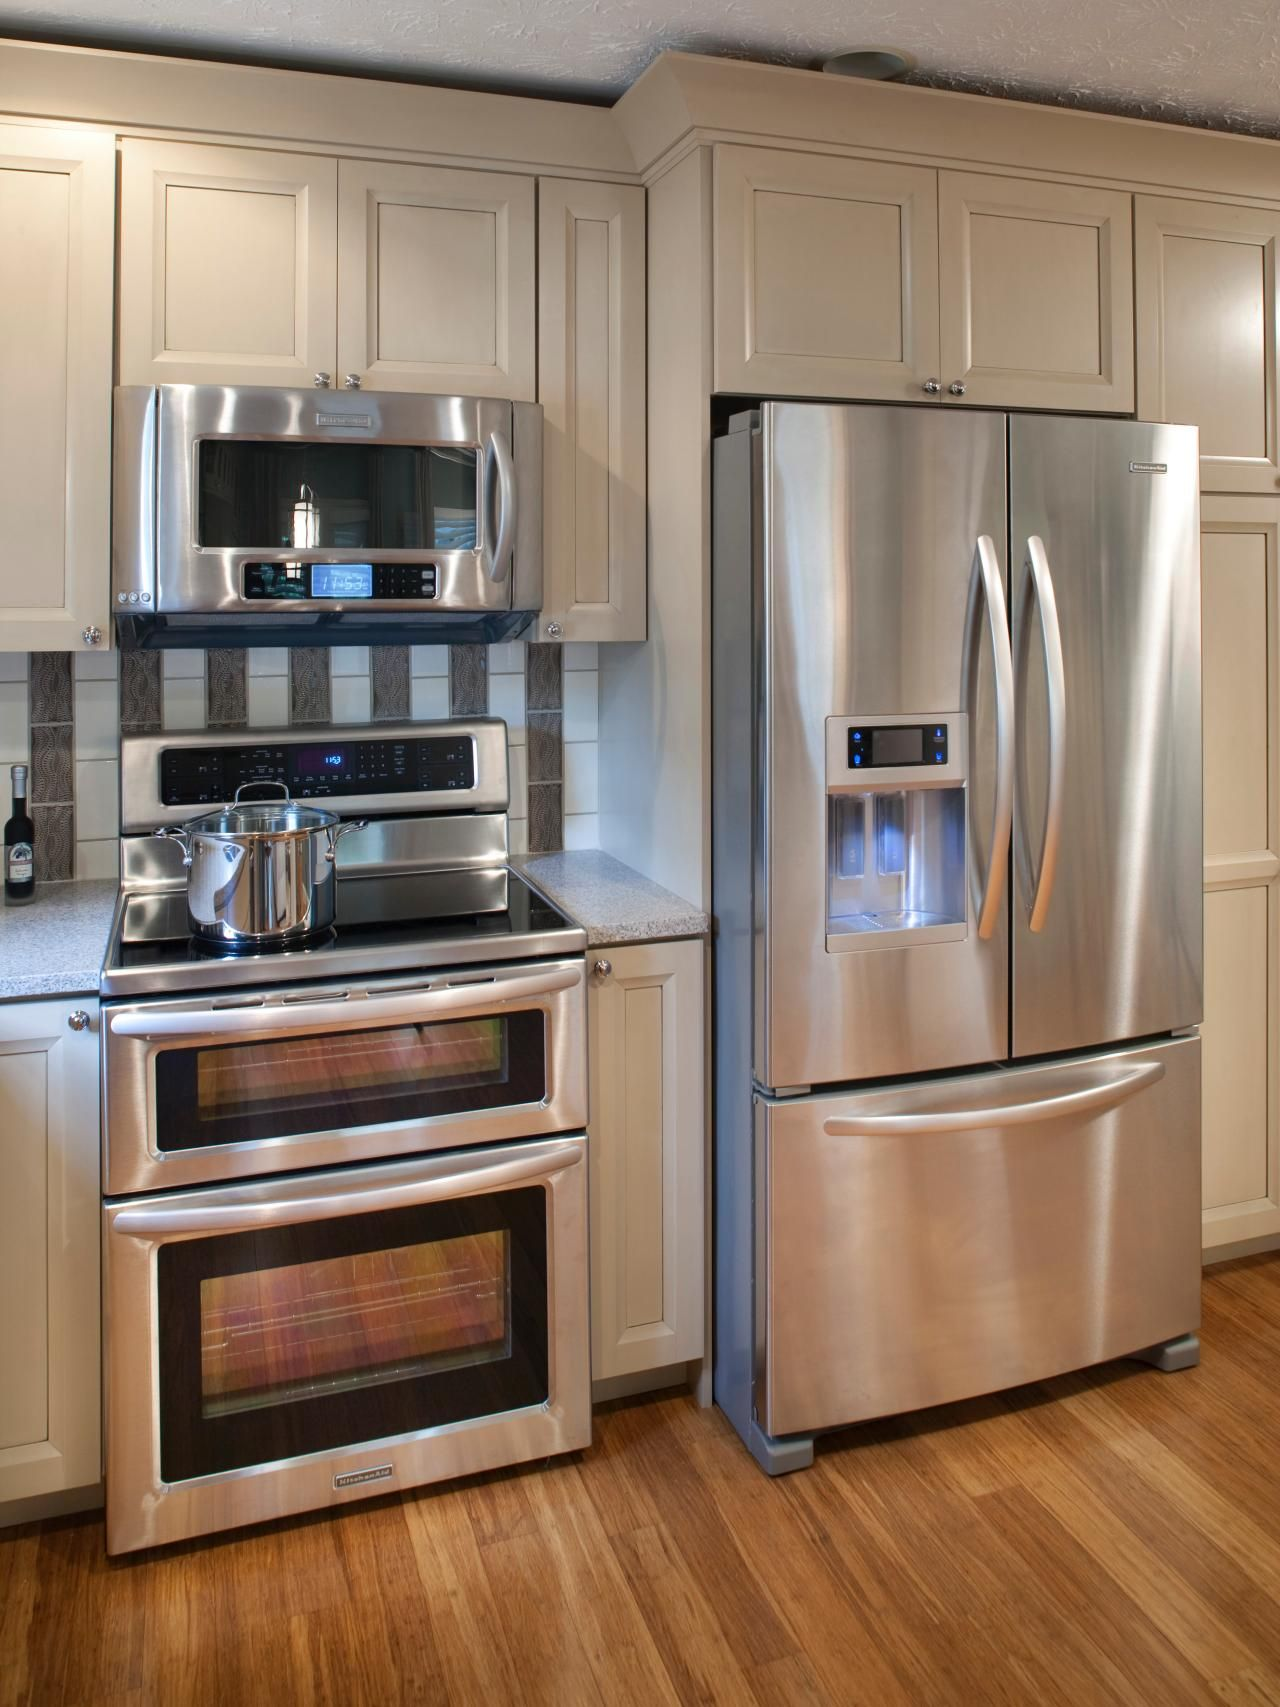 neutral kitchen cabinets provide convenient storage and a clean